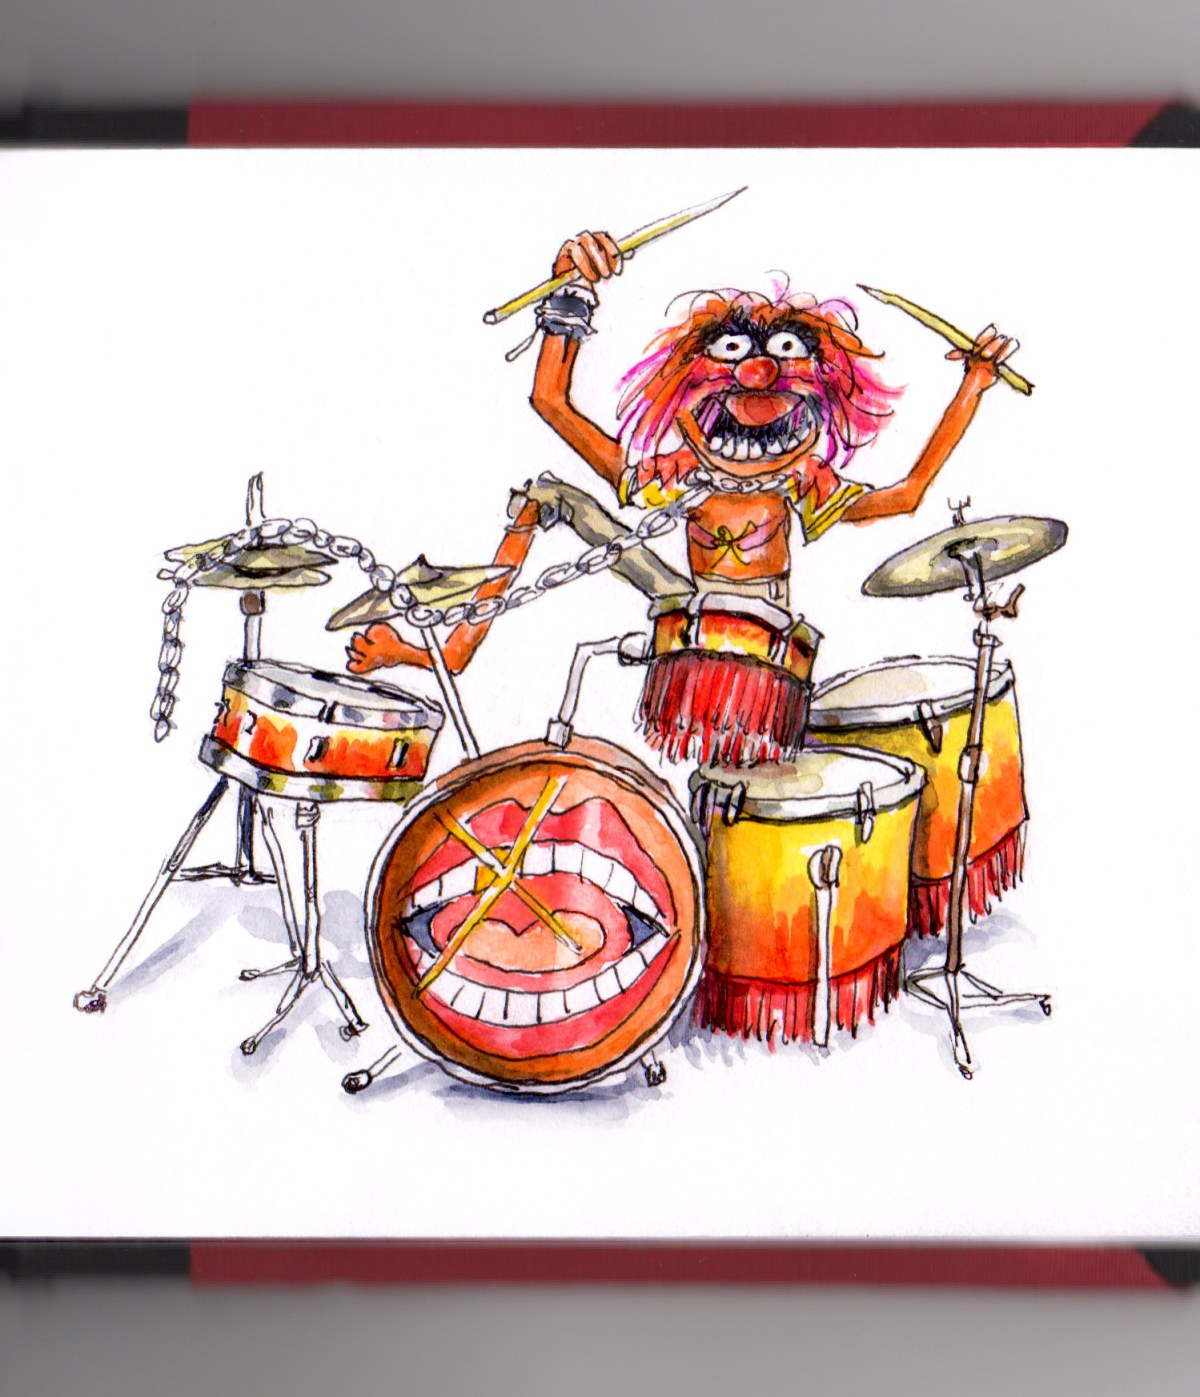 Day 5 - It's Time To Start The Music Animal From The Muppets Playing the Drums